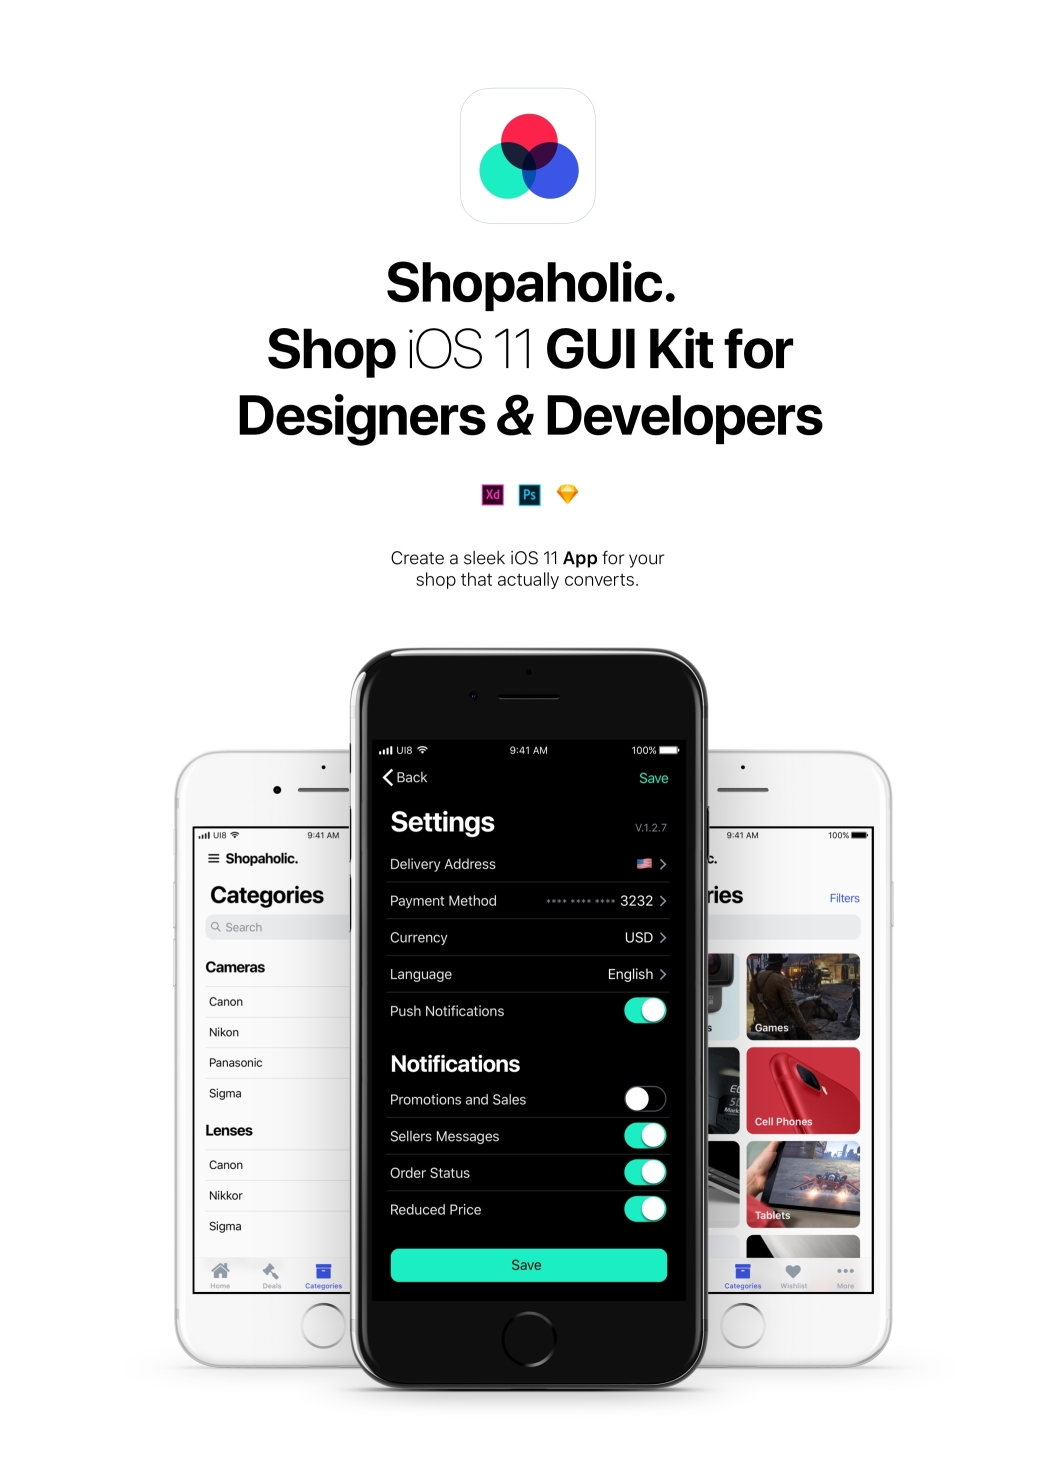 Shopaholic iOS 11 - Доскональный комплект UI электронной коммерции iOS 11 для Sketch, Photoshop и XD